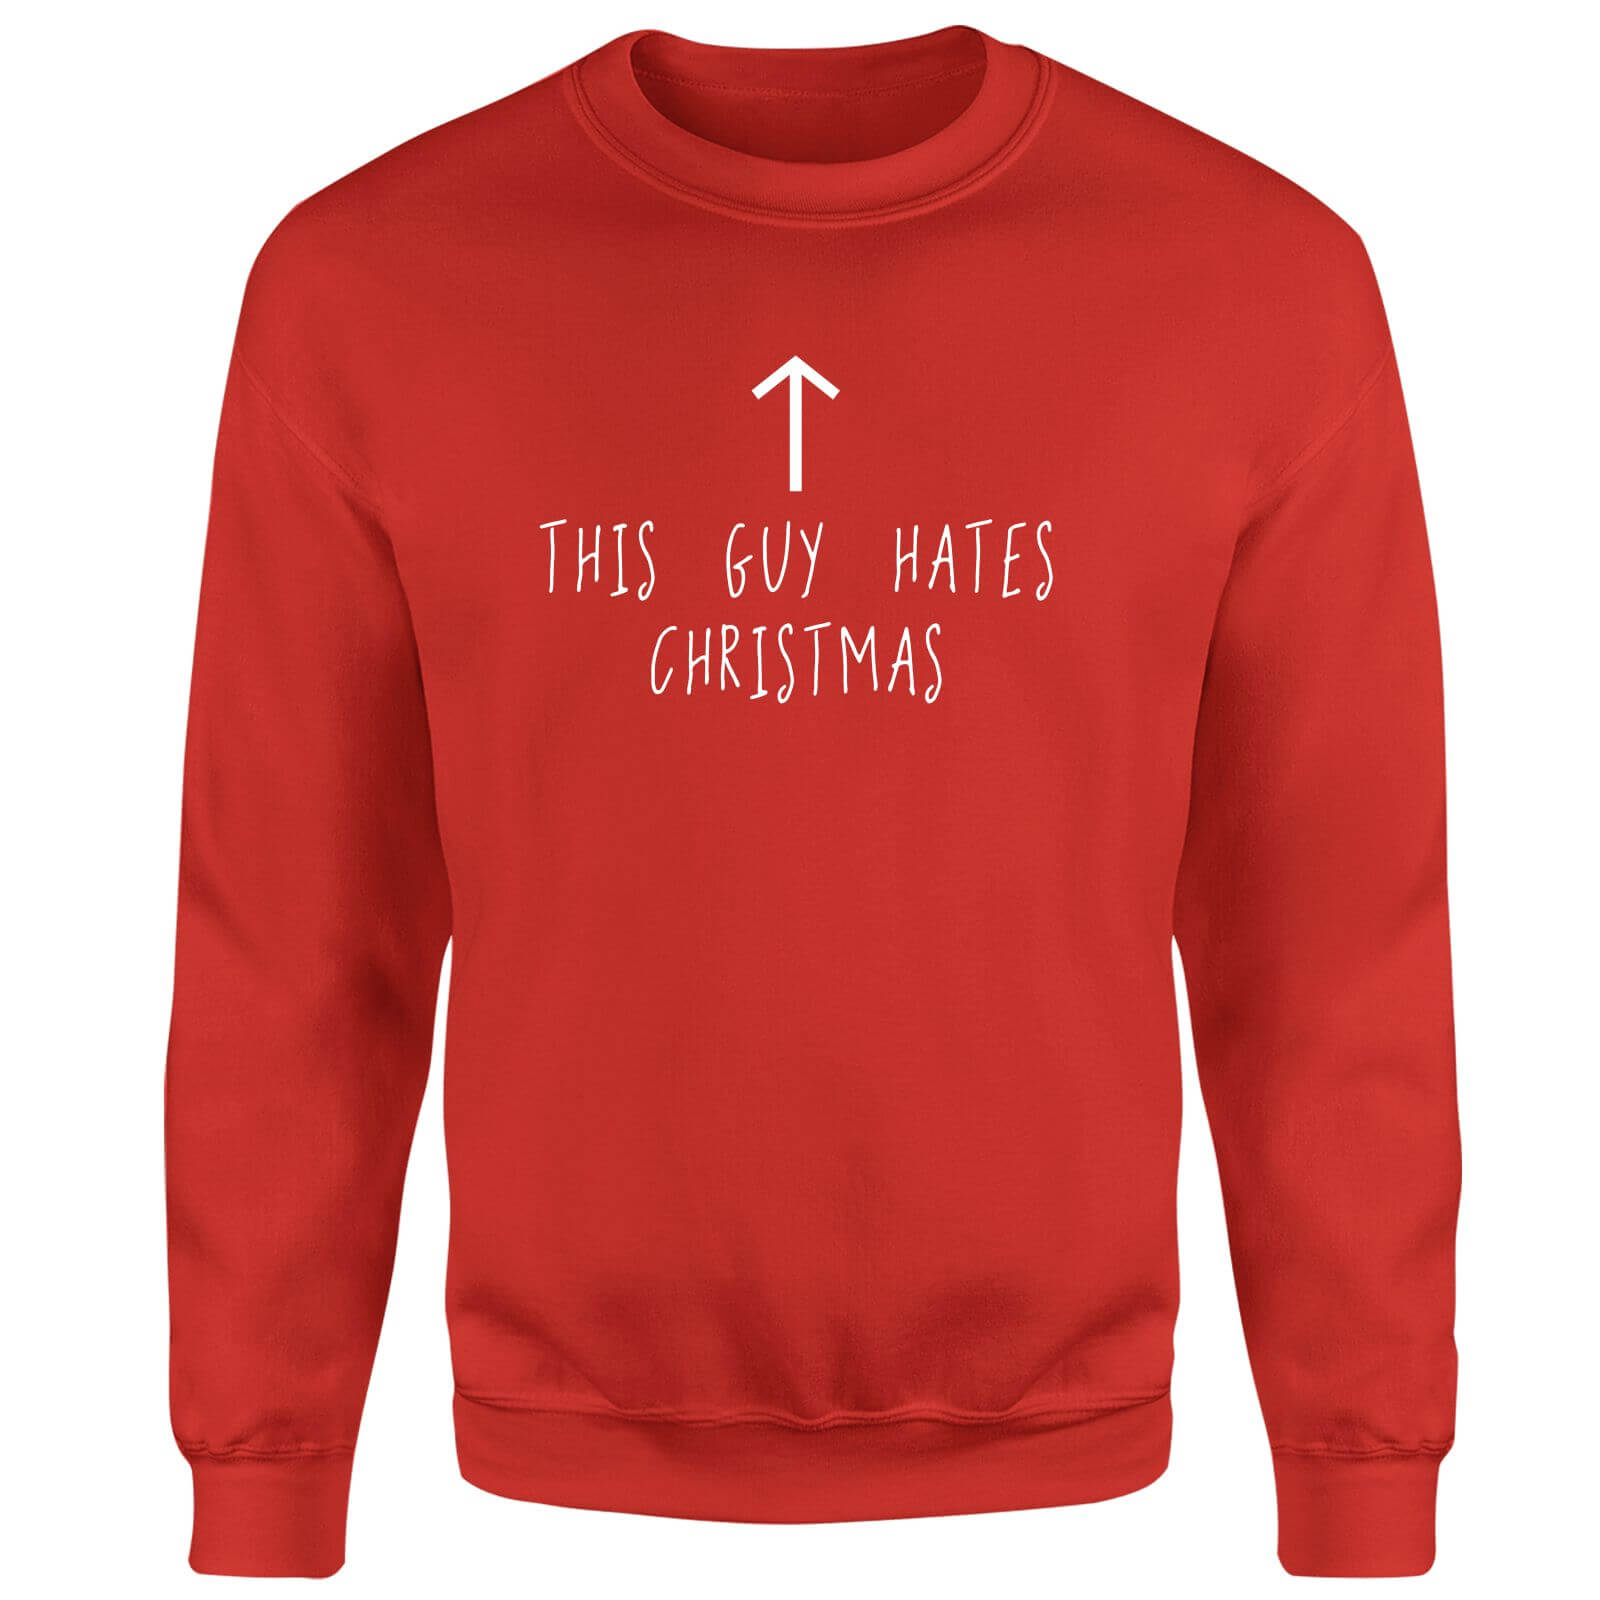 This Guy Hates Christmas Sweatshirt - Red